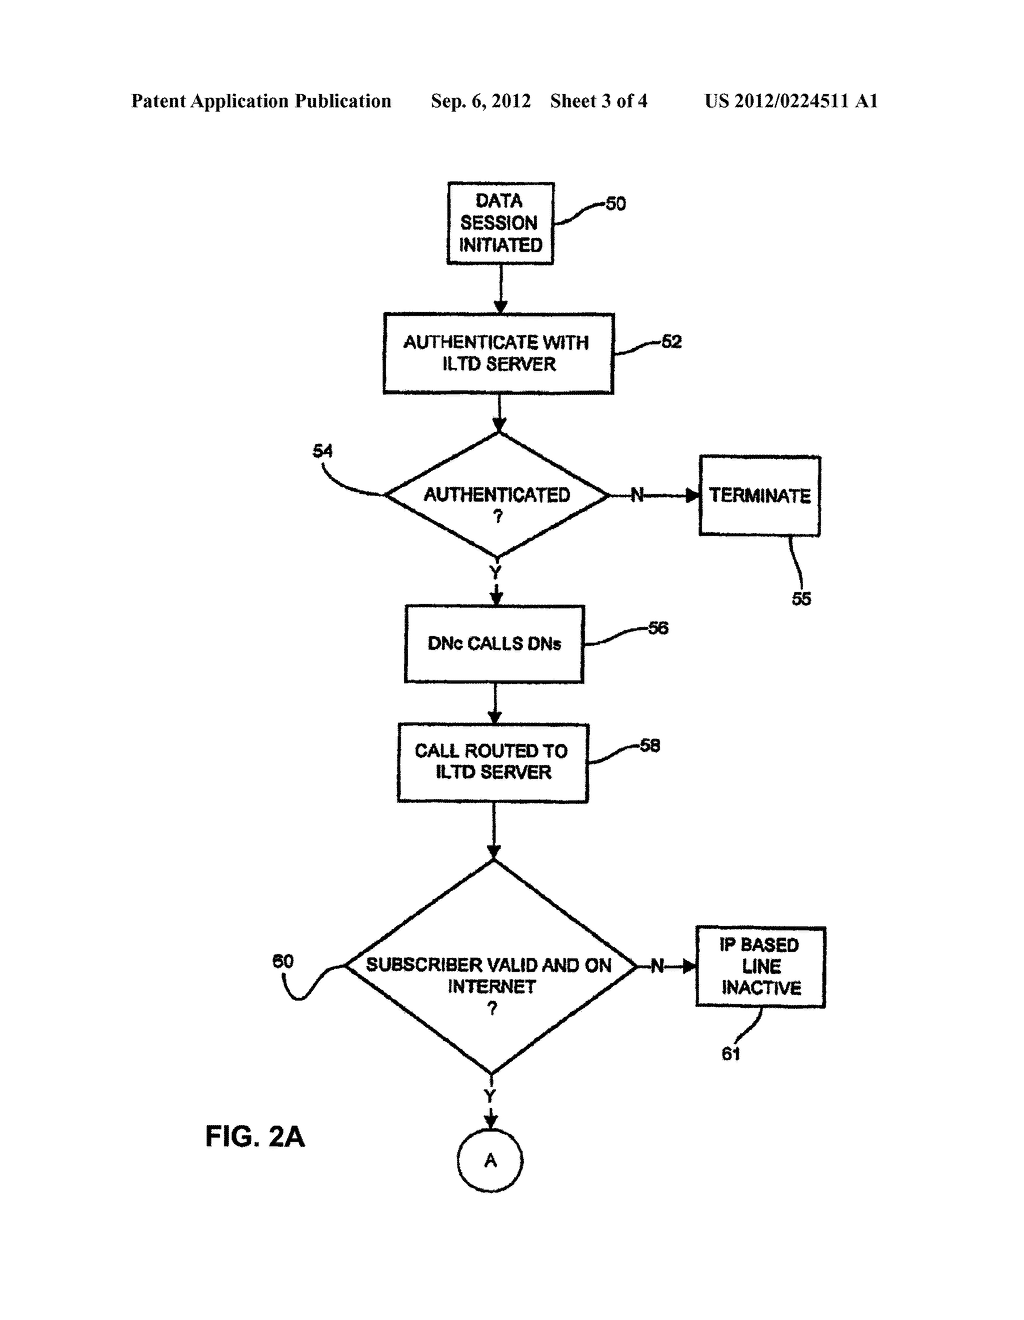 Telephone Connection Diagram Schematic Diagrams Network Interface Wiring Internet Based Line And Image 04 Box